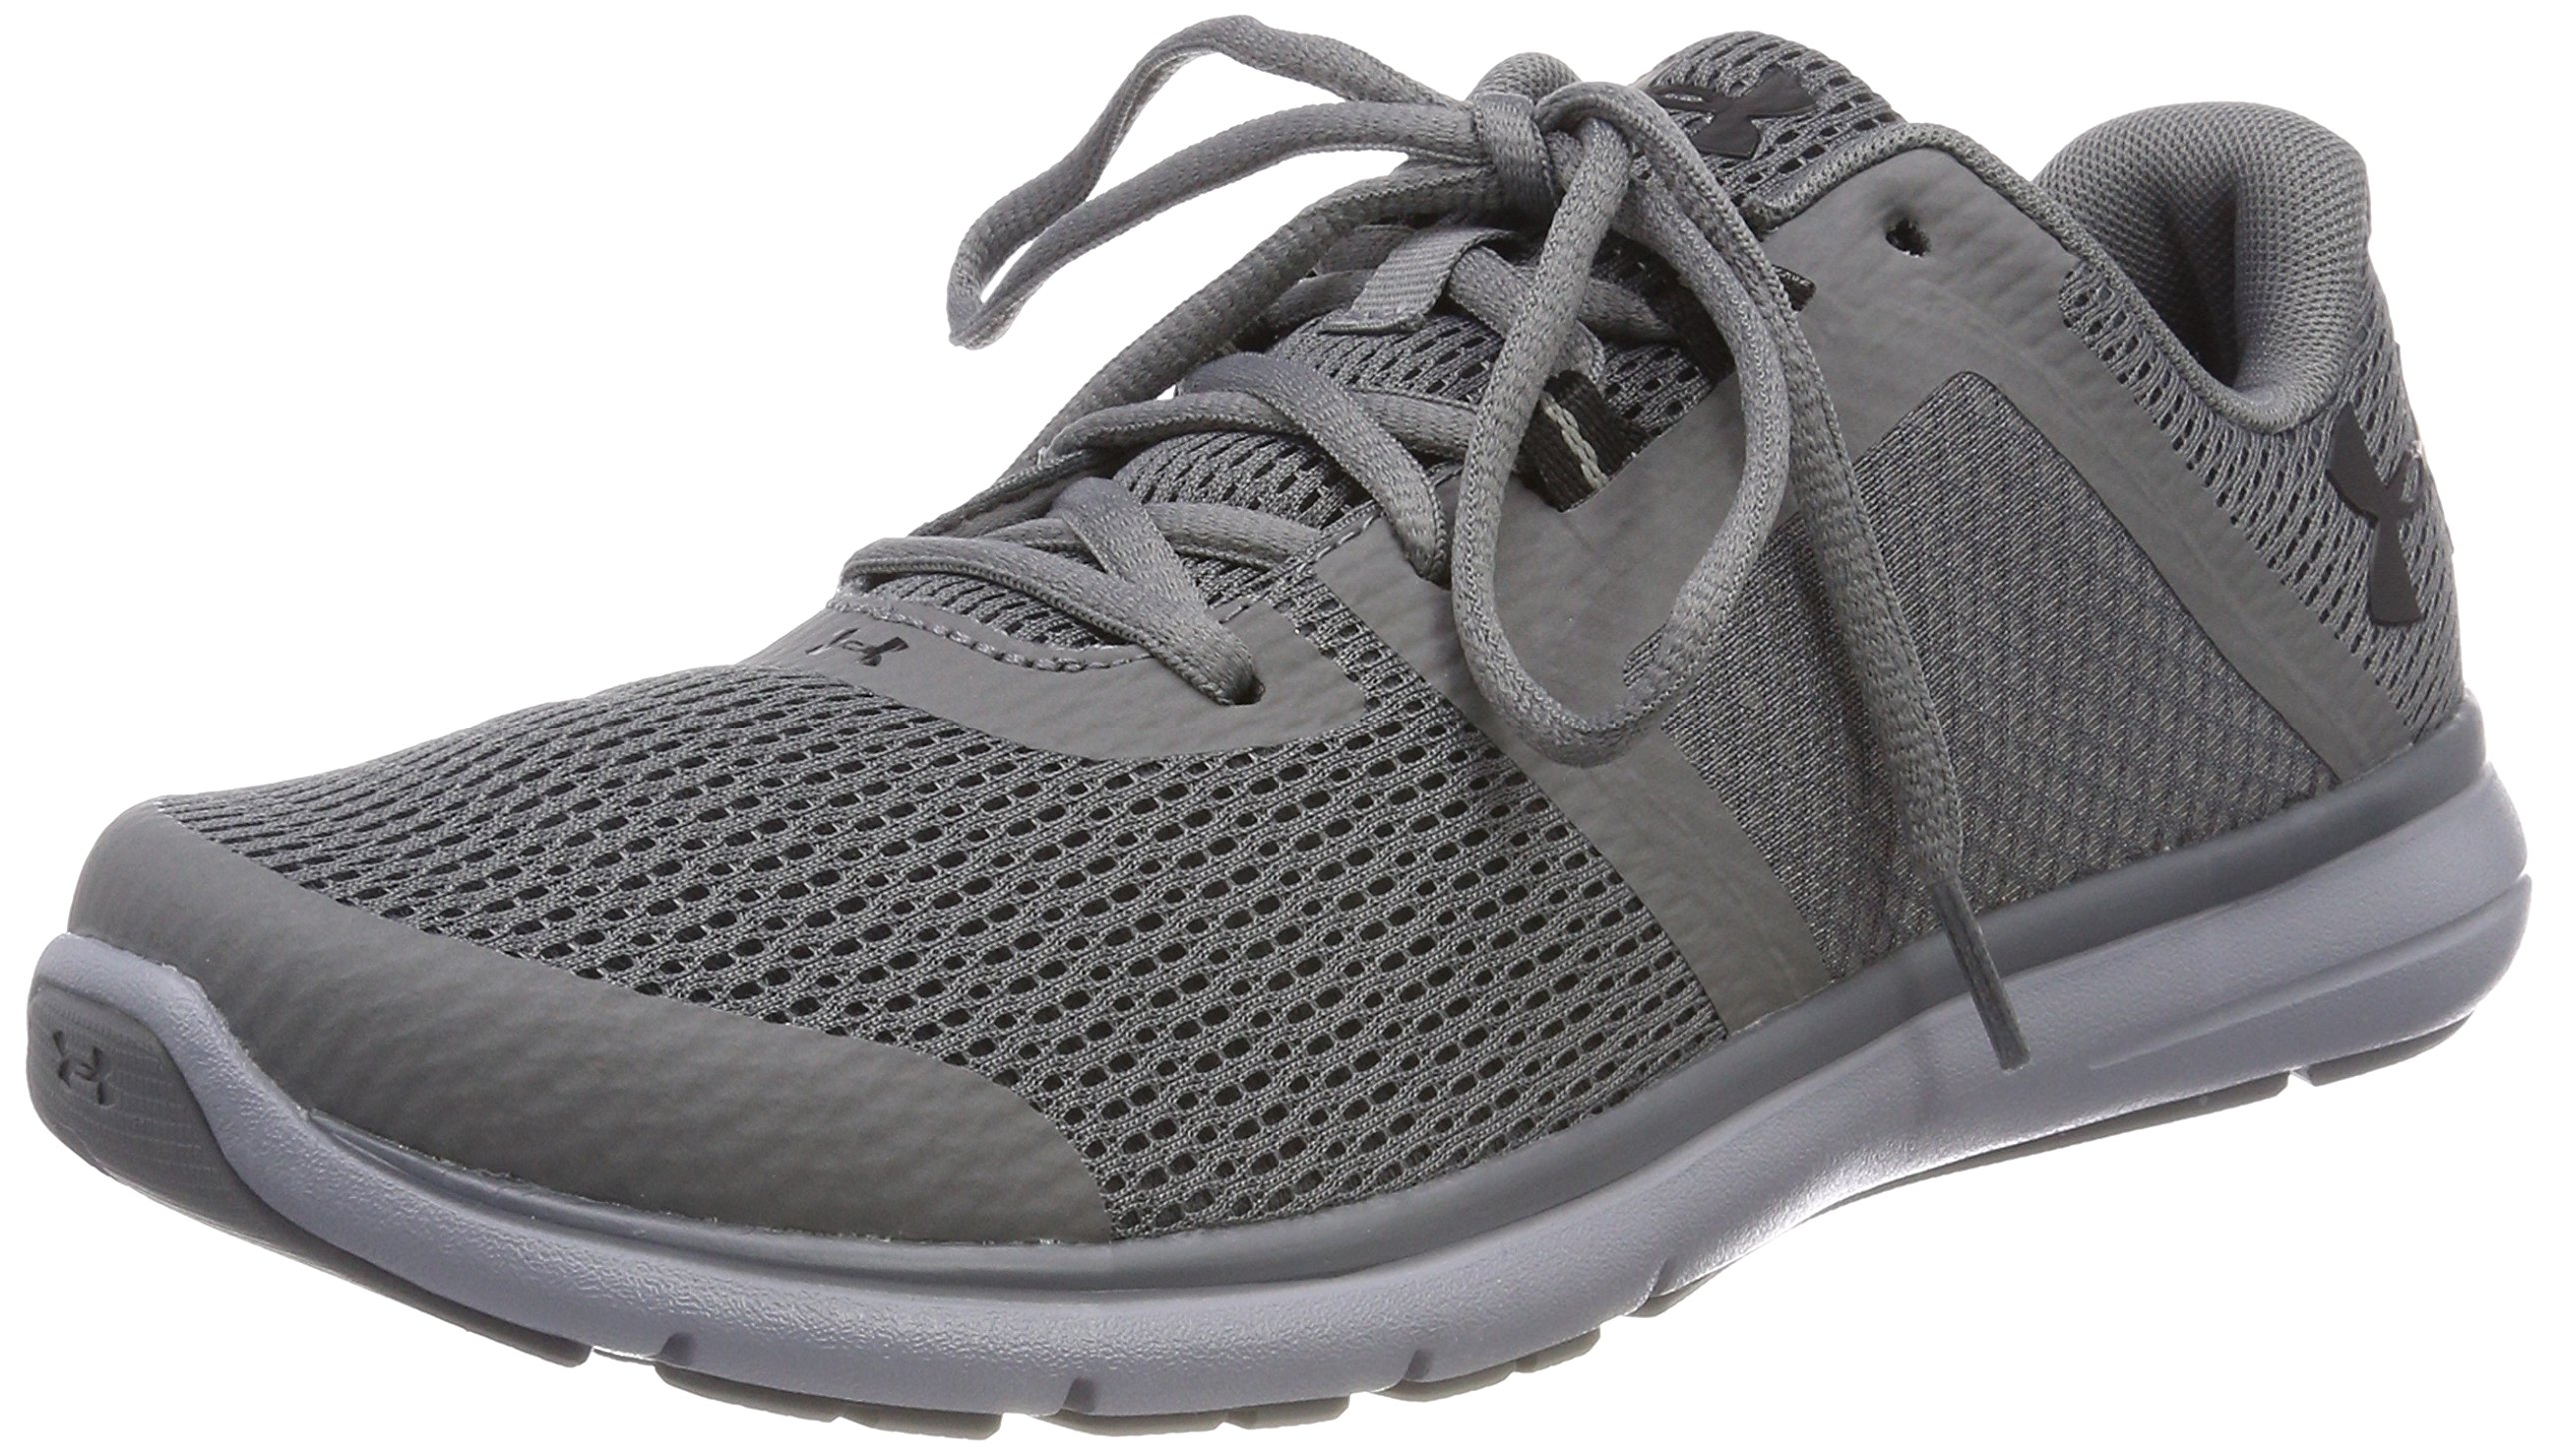 Under Armour Fuse FST Running Shoes - 7